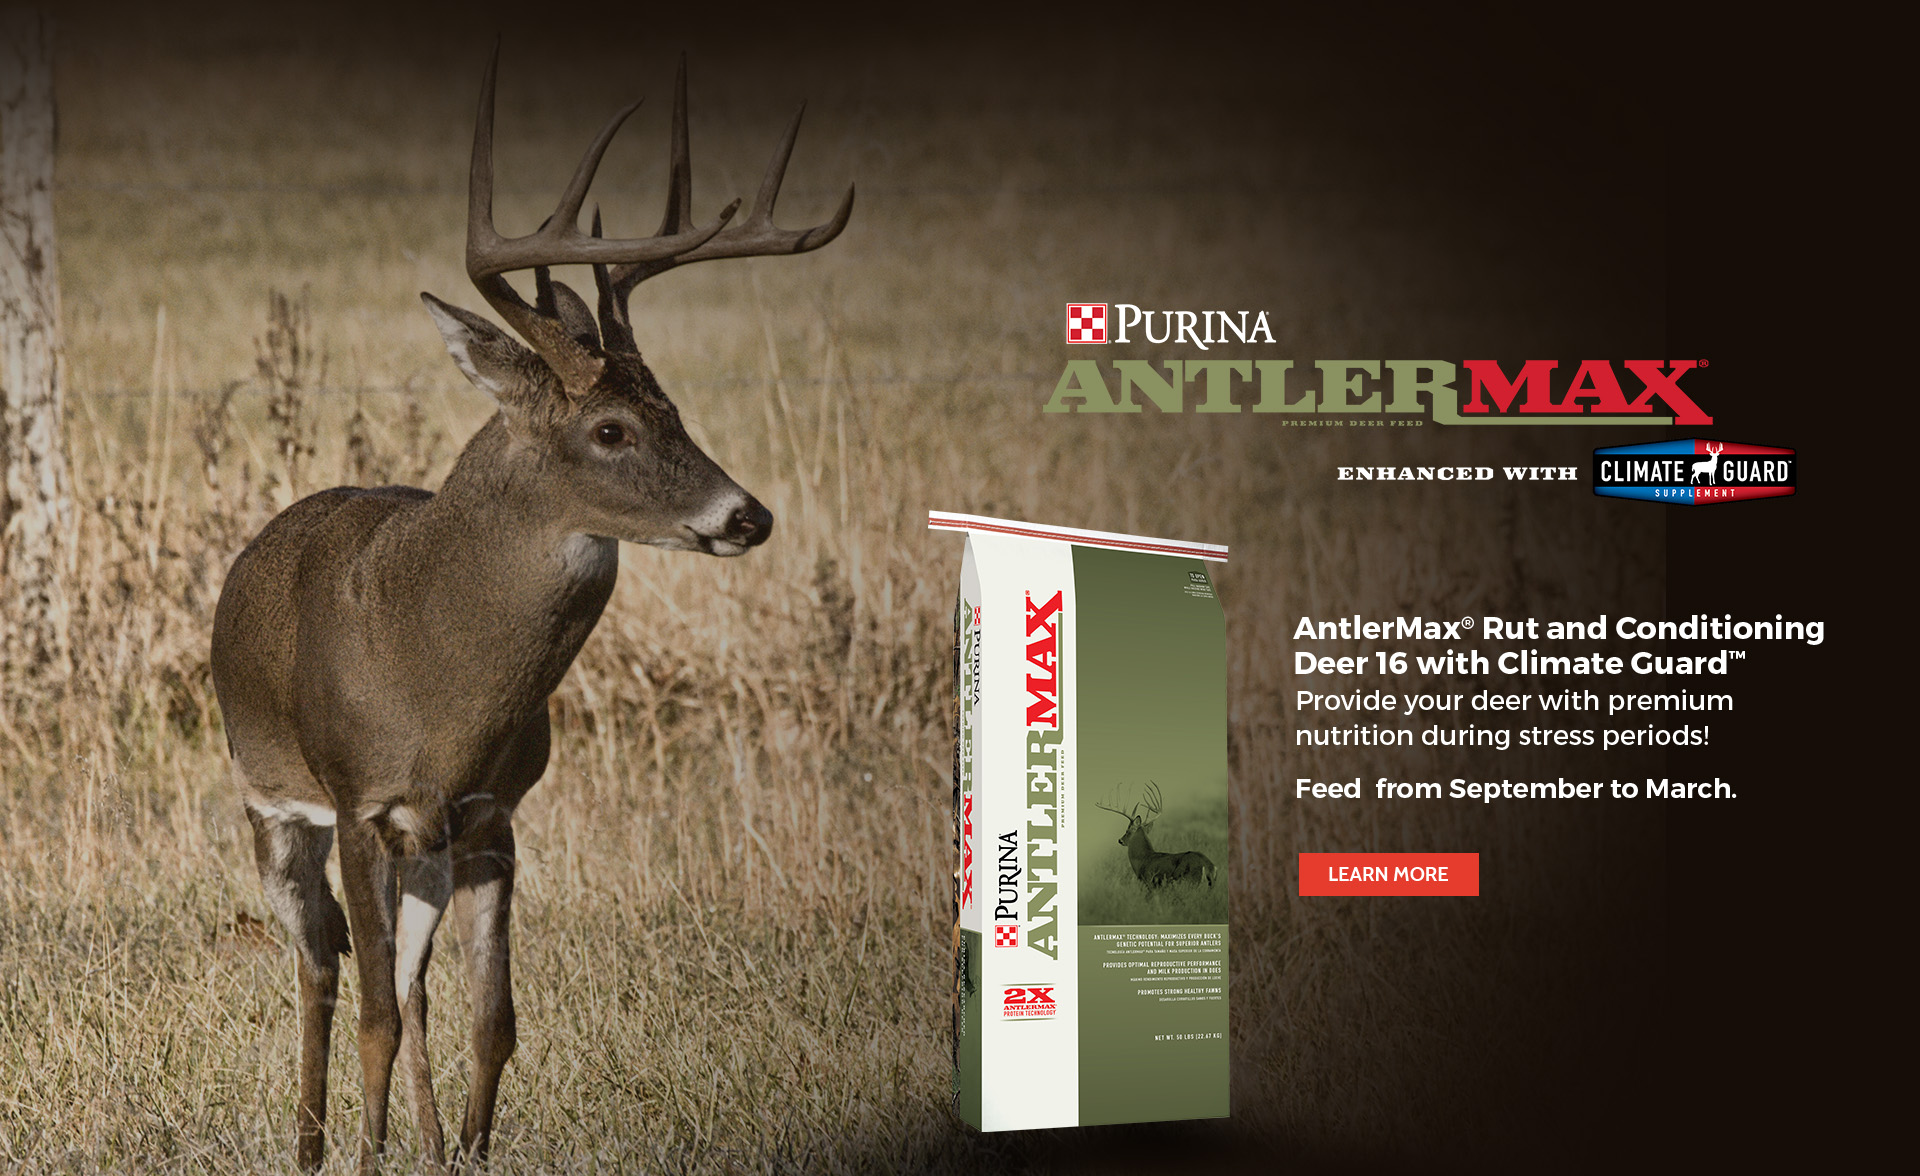 Purina AntlerMax Rut & Conditioning